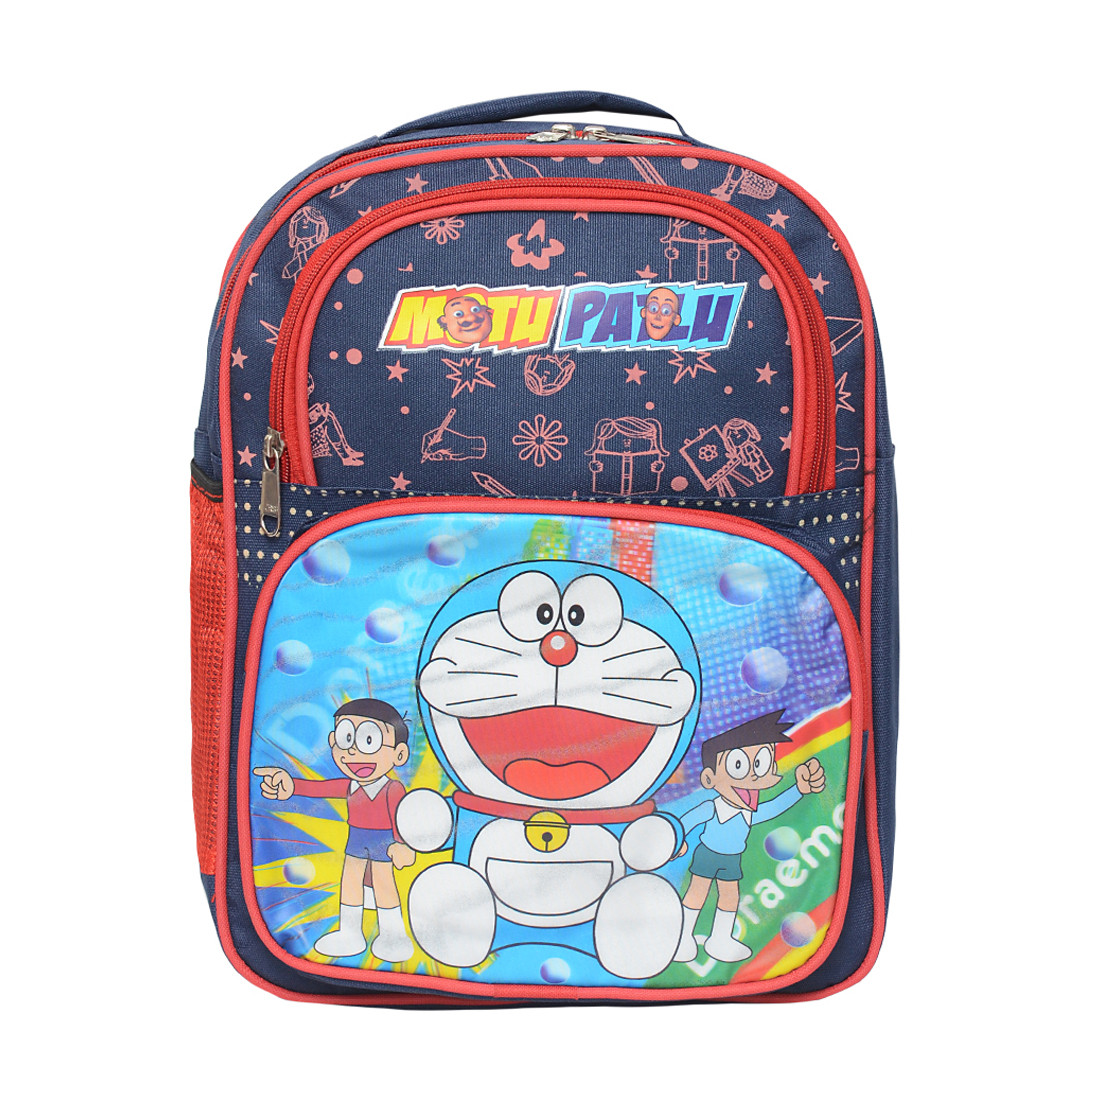 SDC Motu Patlu Polyester School Bag + Milton Water Bottle + Pencil ... 0a8b729d0ae25